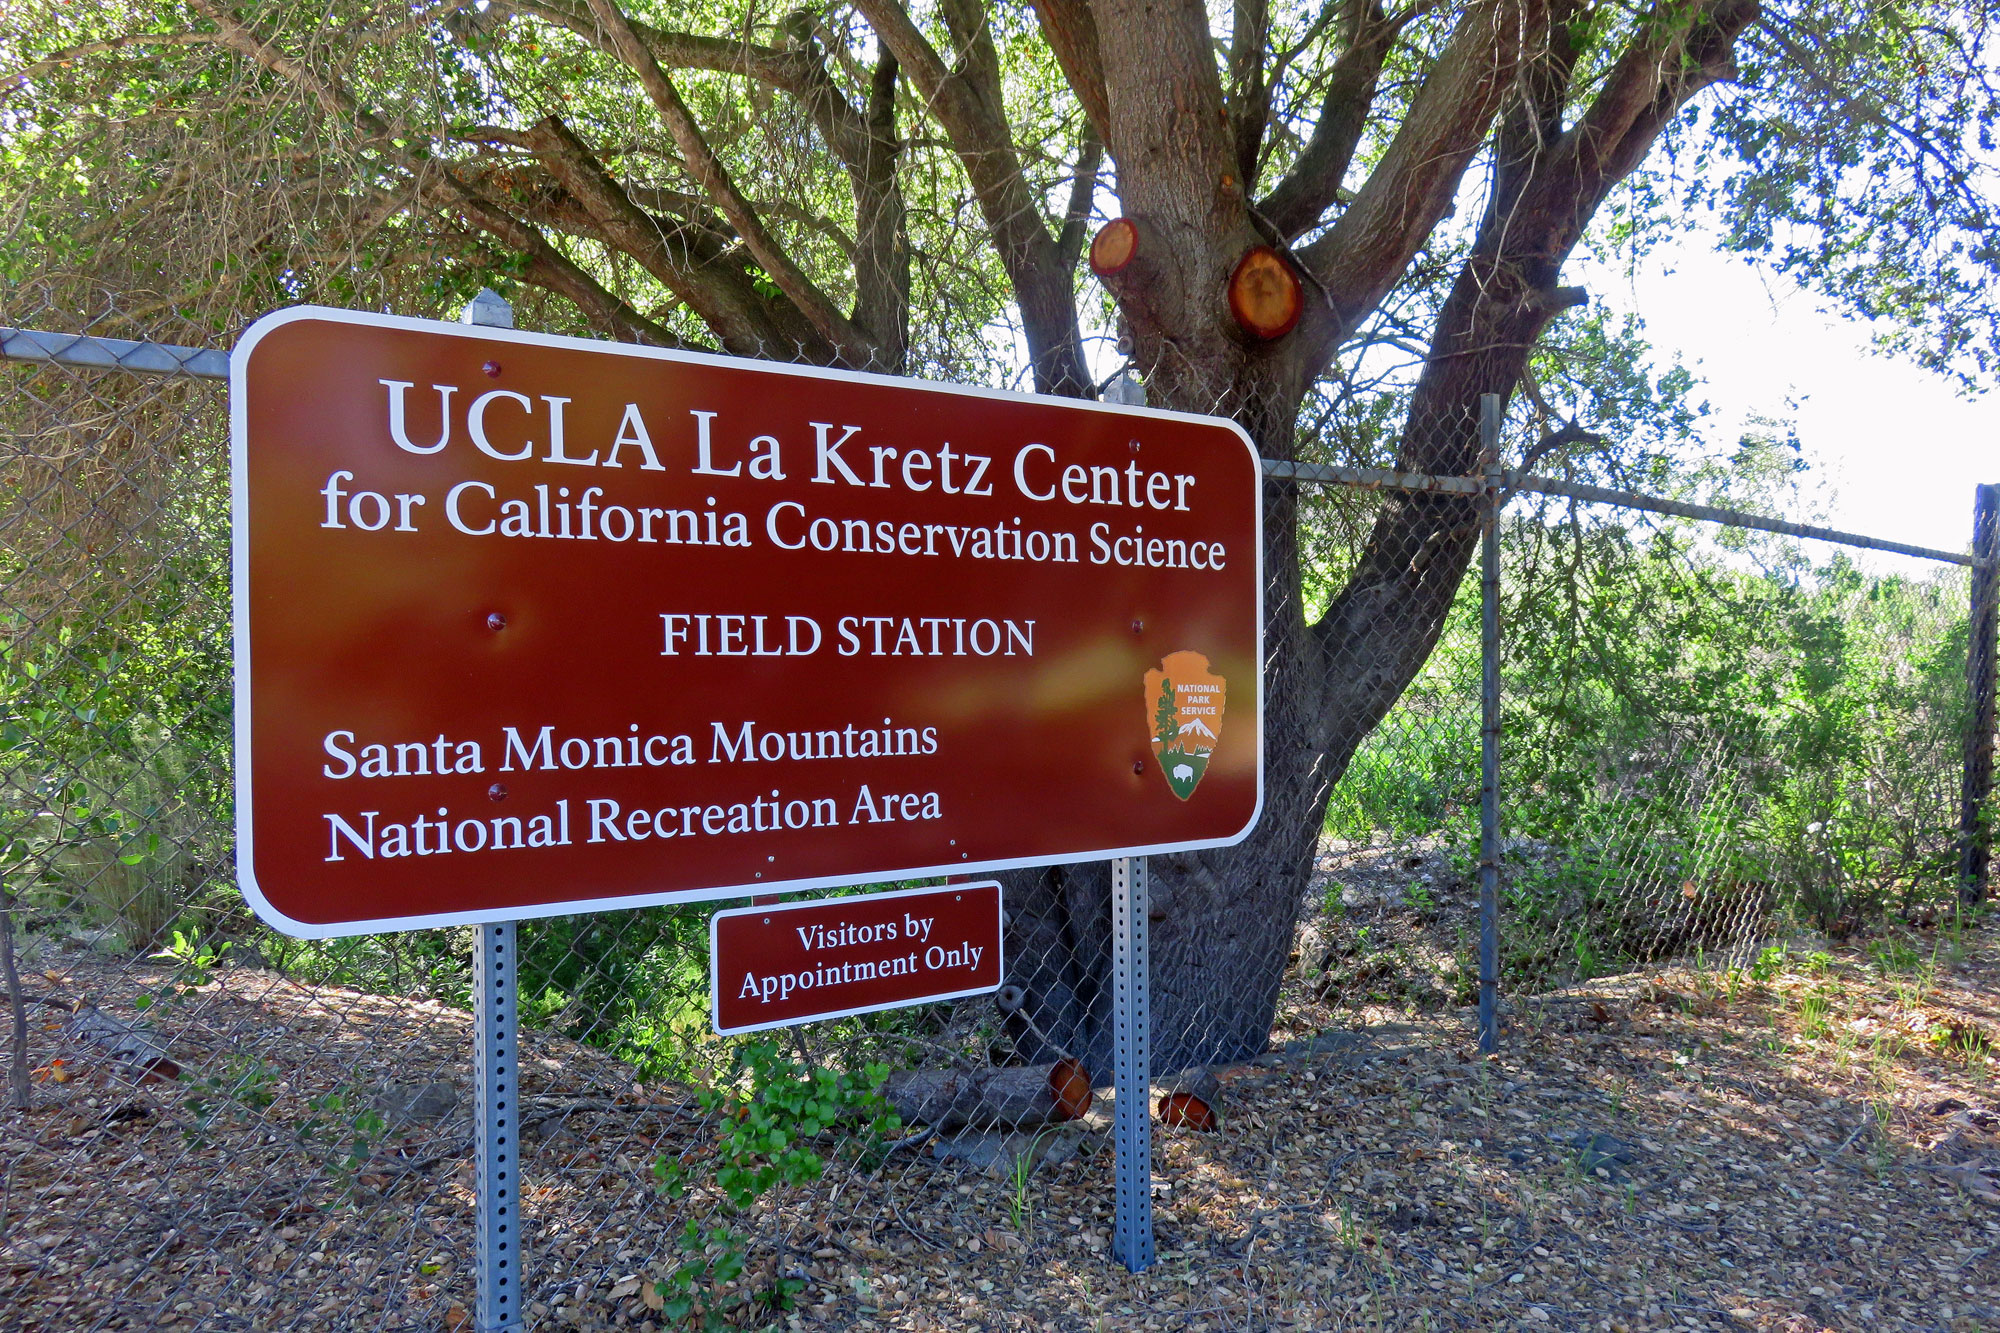 Sign for UCLA La Kretz Center field station